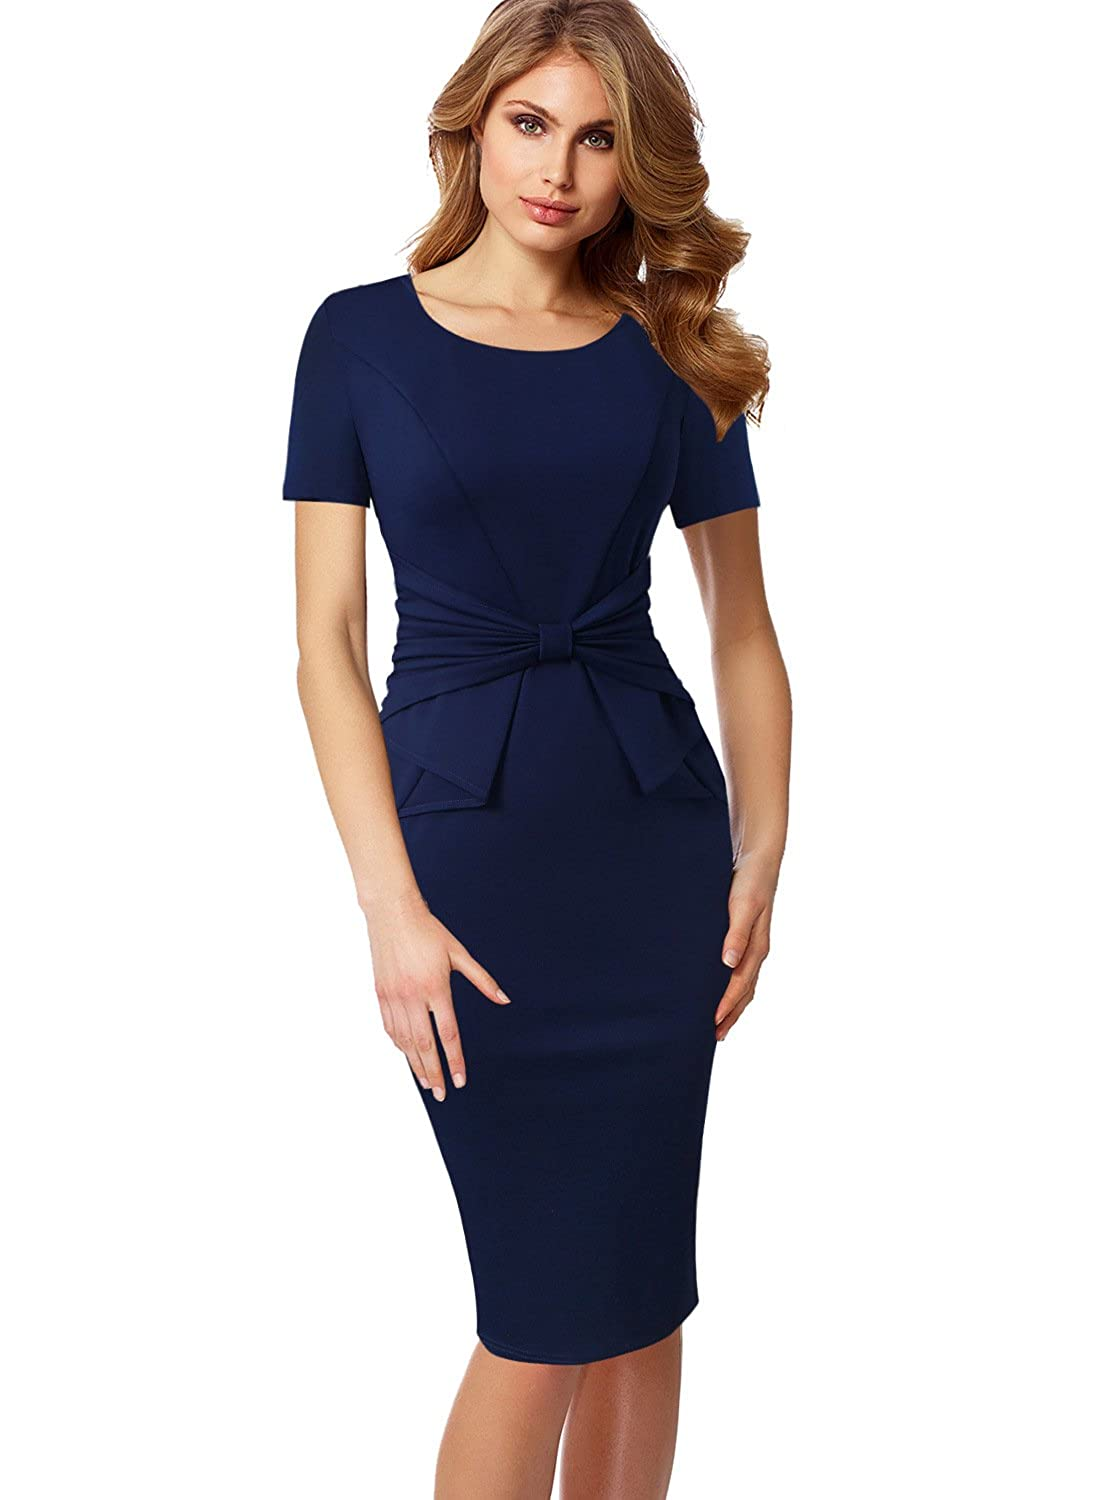 bluee Short Sleeve VFSHOW Womens Pleated Bow Wear to Work Business Office Church Sheath Dress